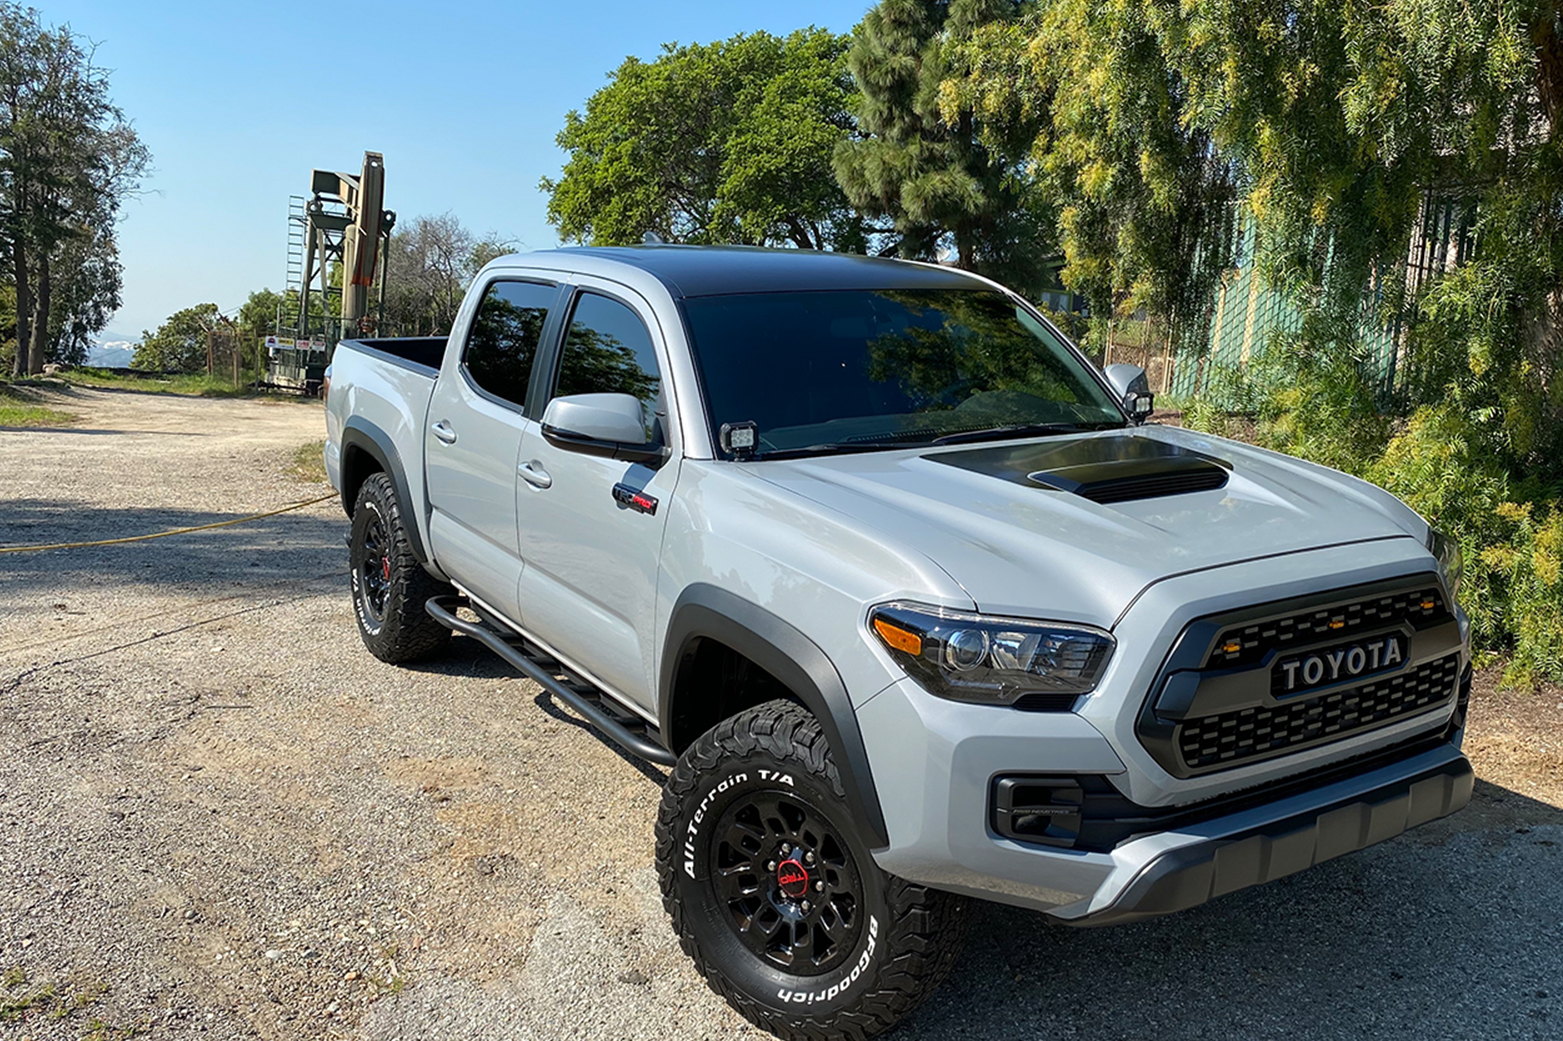 Lifted Cement TRD Pro 3rd Gen Tacoma with Satin Black Vinyl Wrapped Roof